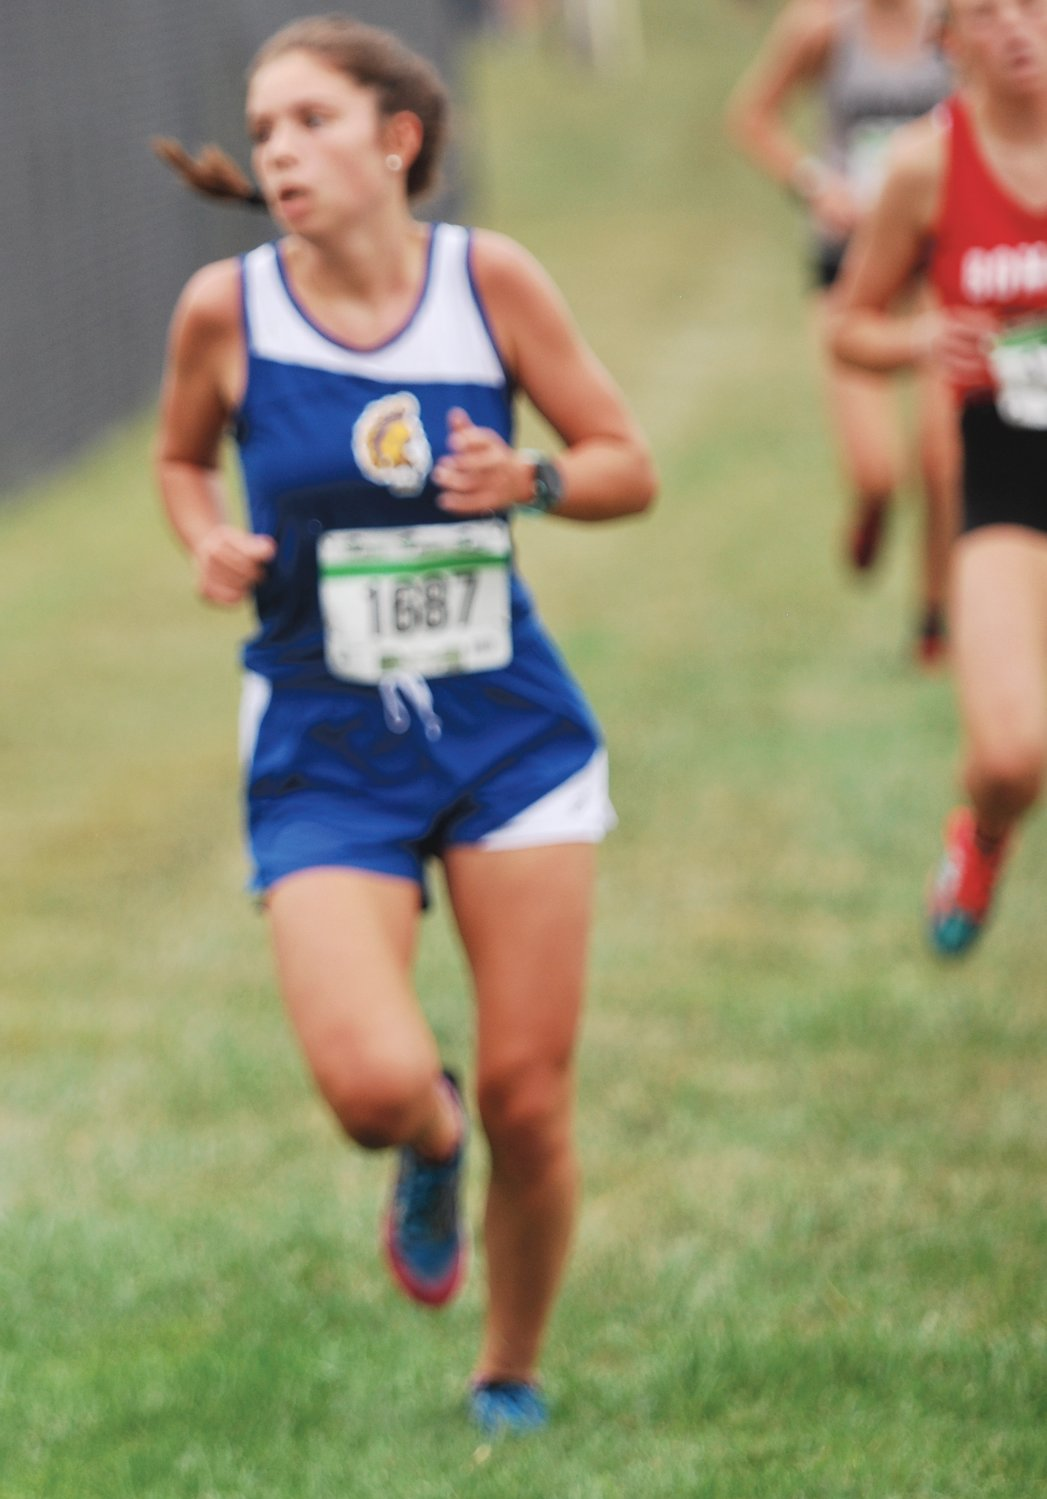 Crawfordsville's Shelby Greene led the Athenians with a 17th-place finish in 22:34.